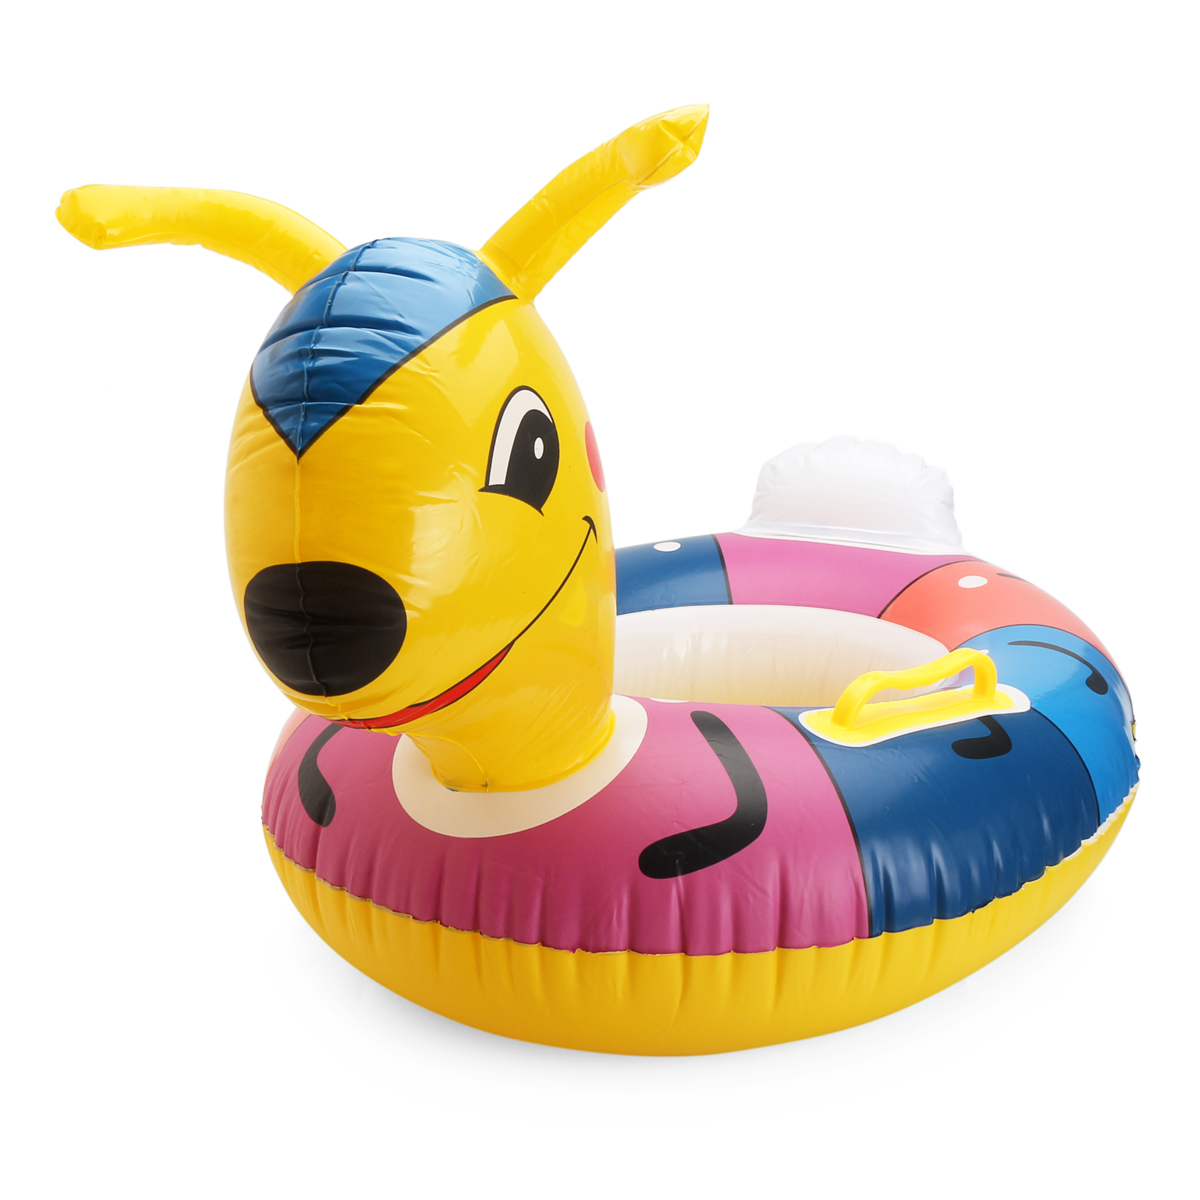 IPRee™ Baby Kid Child Safety Seat Float Ring Inflatable Raft Pool Swimming Boat